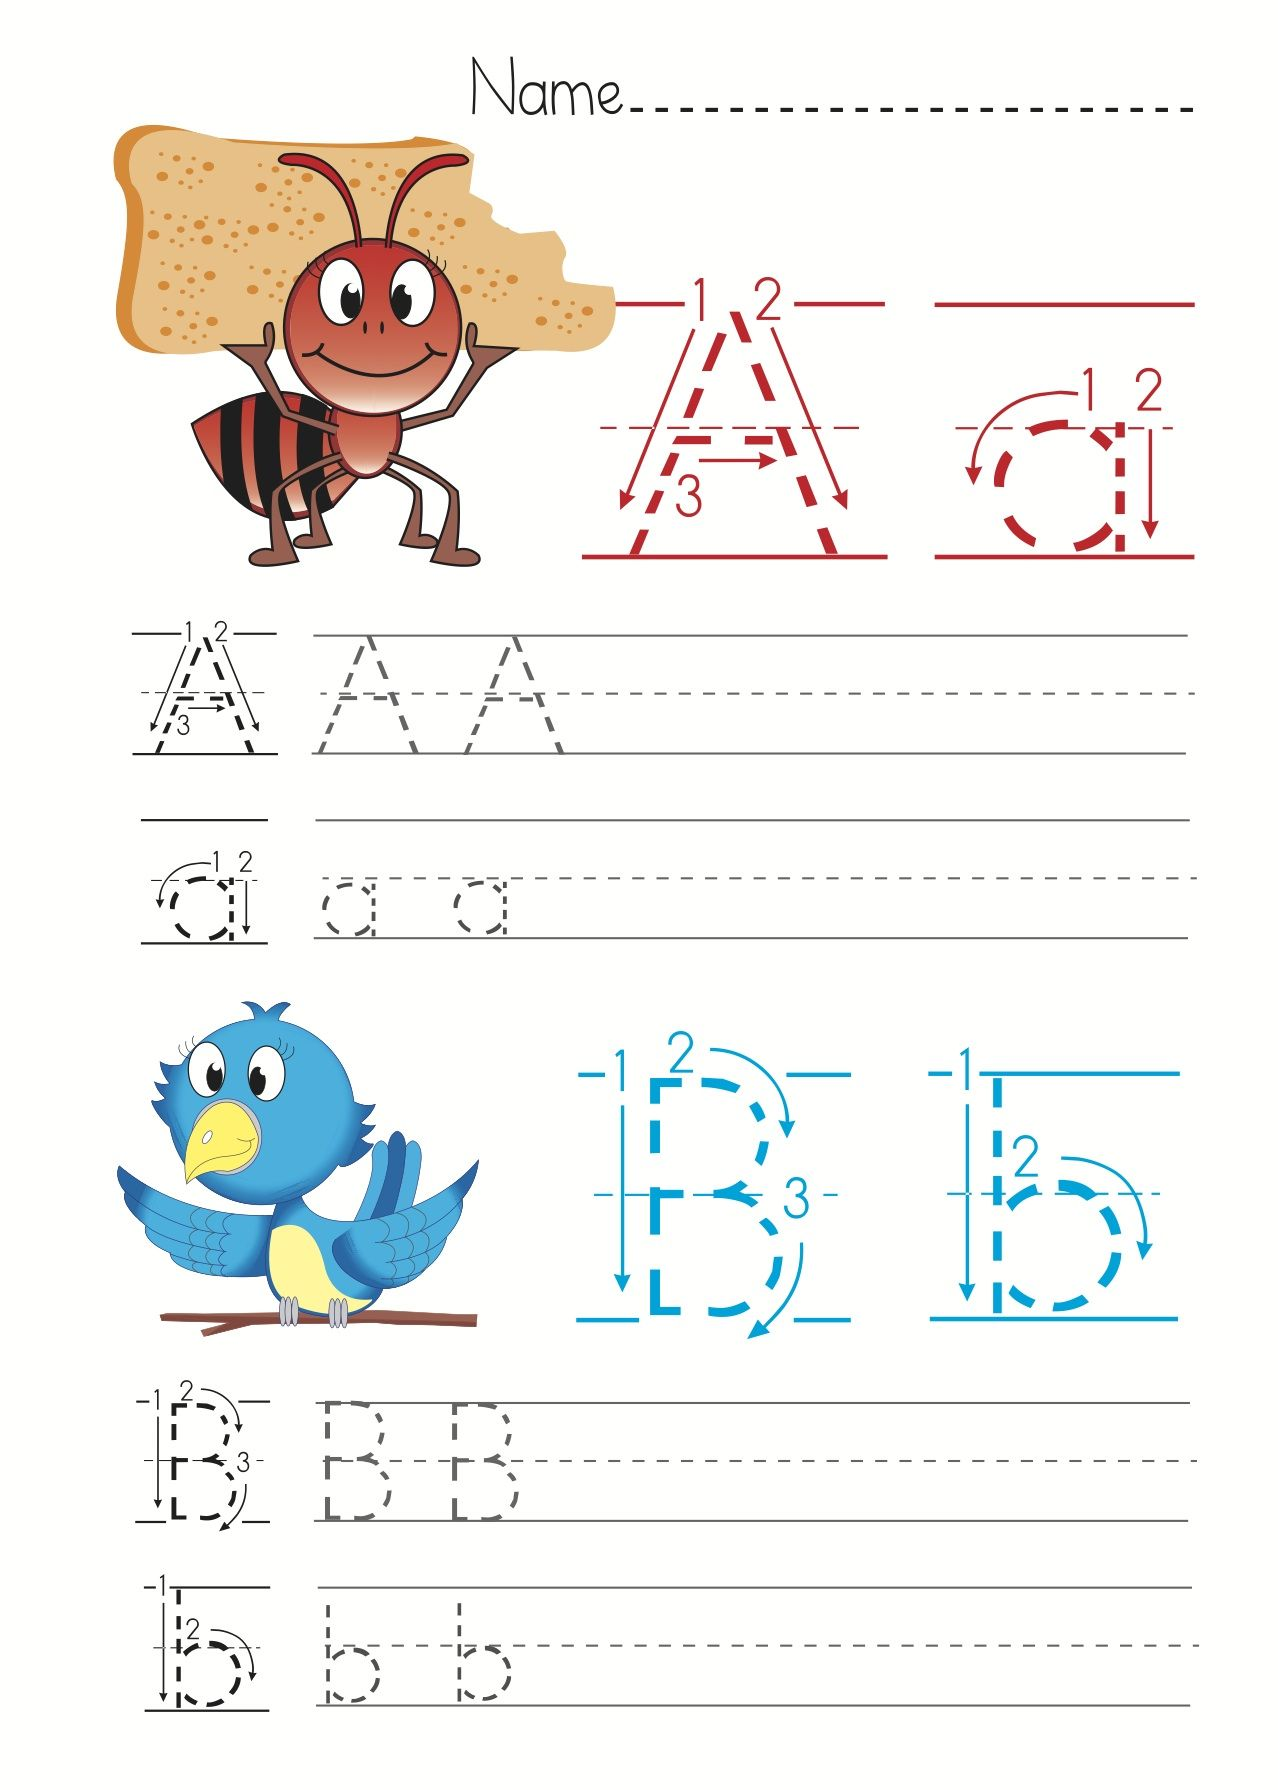 Free Alphabet Letter Worksheets For Children Educational Resources For Preschool